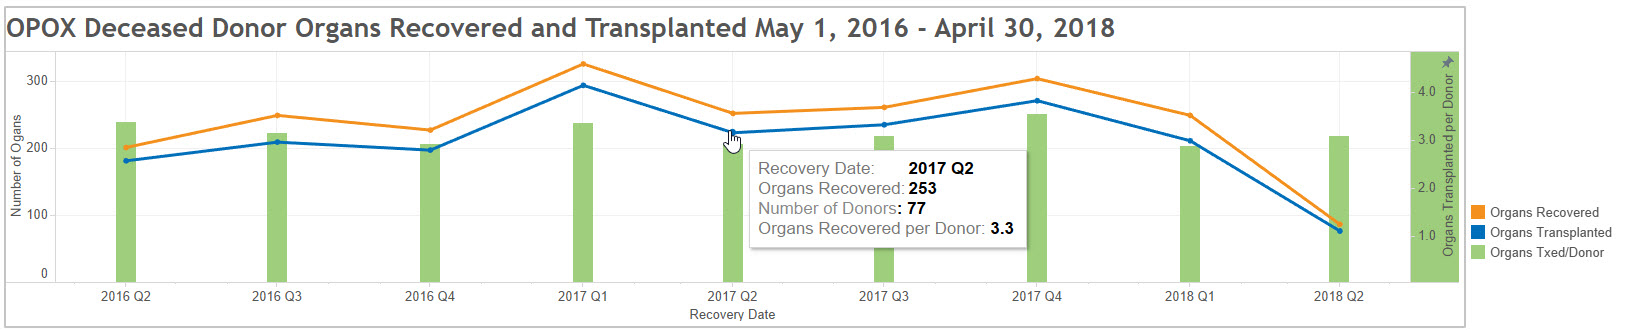 graph showing deceased donor organs recovered and transplanted